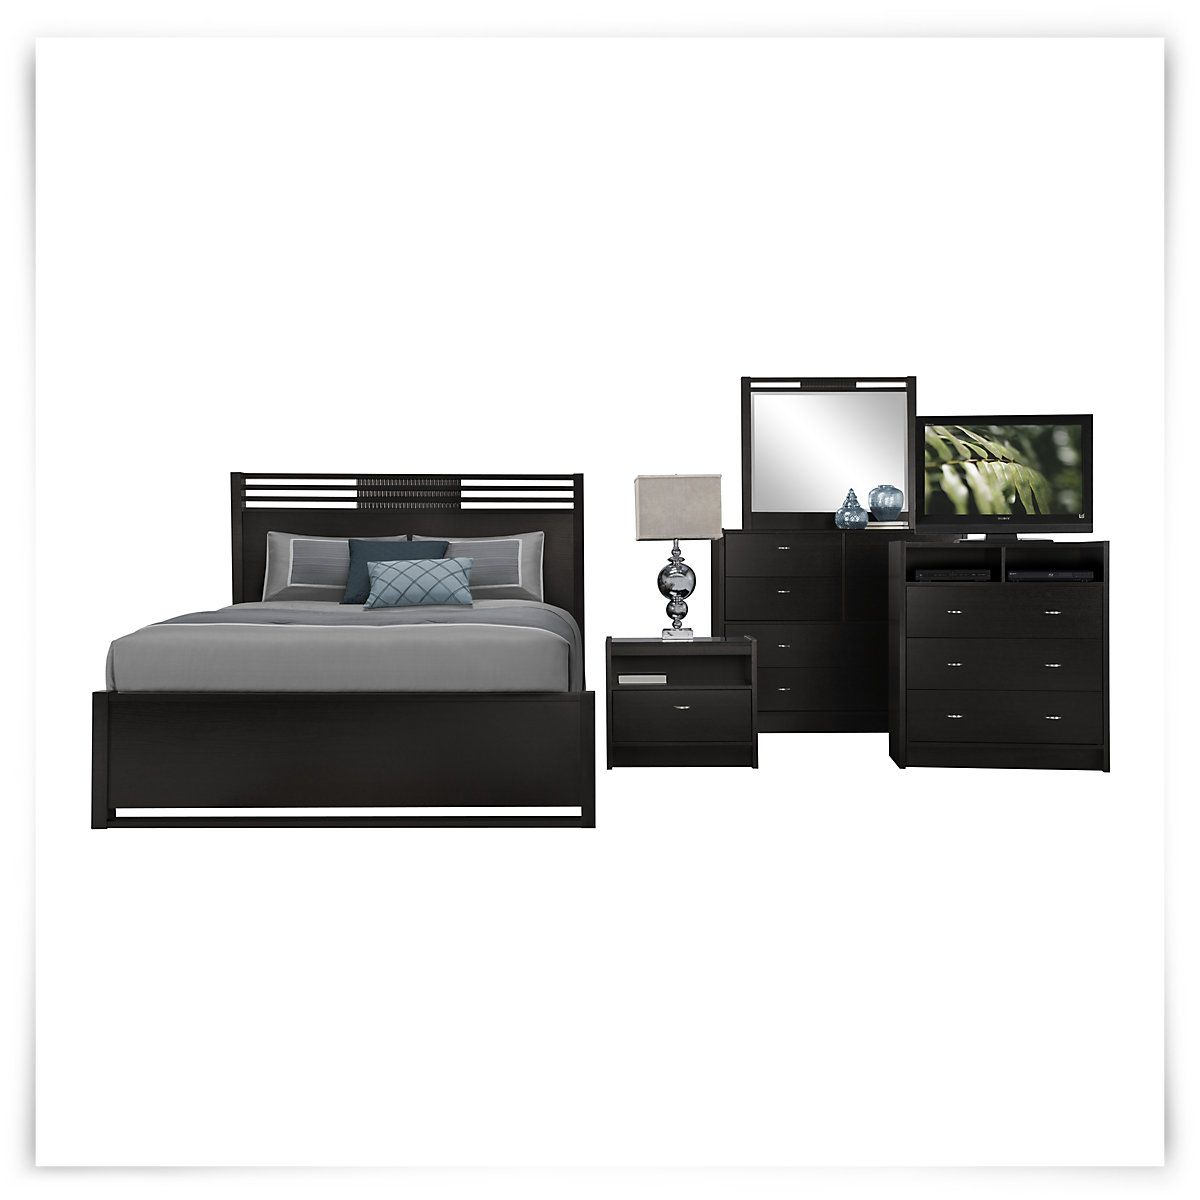 Bed includes: Headboard, footboard, and rails Add warmth and ...